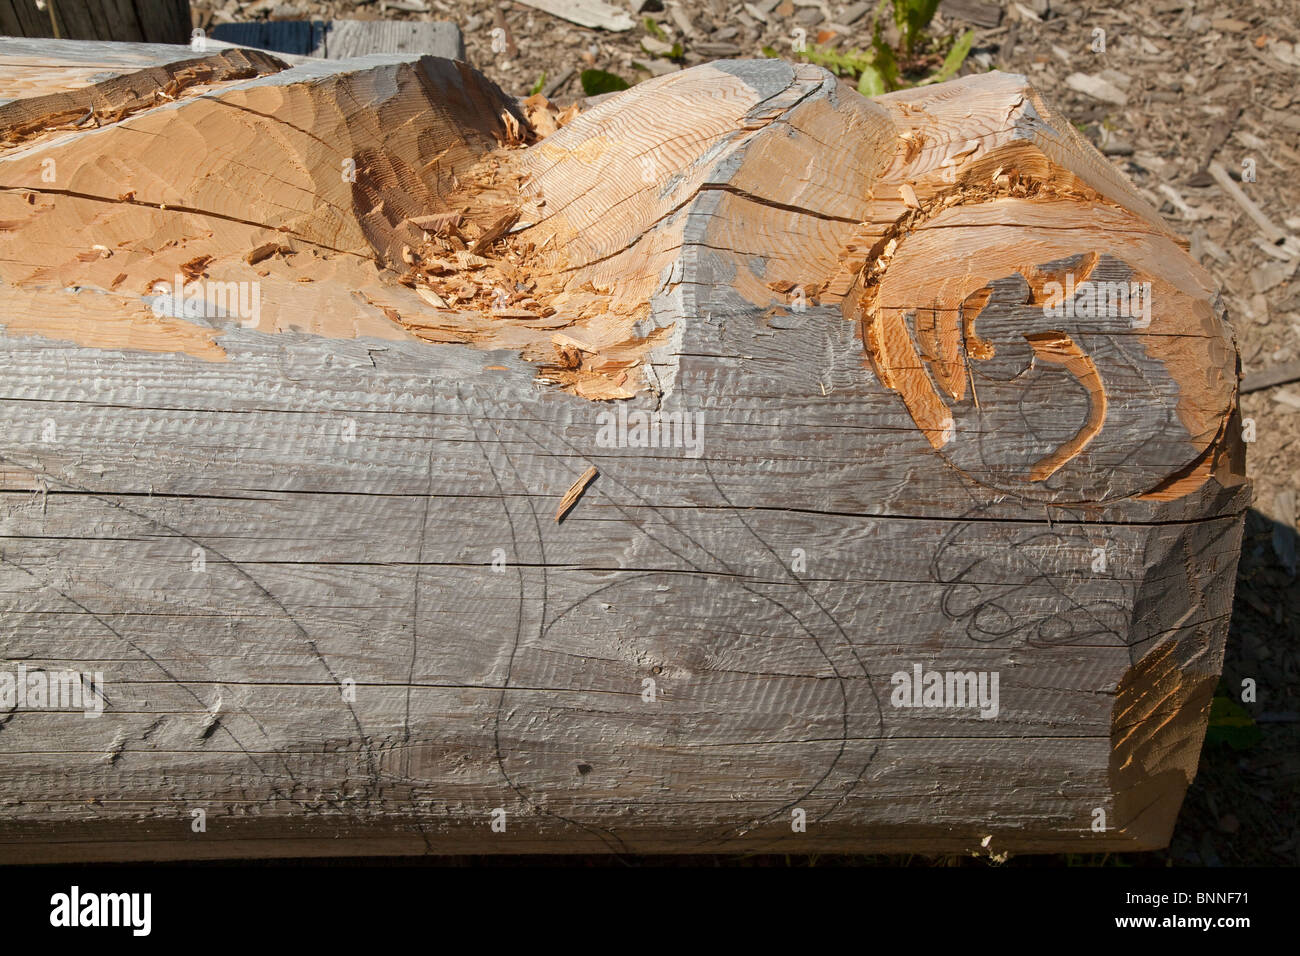 USA, Alaska, Kake -carving a totem pole - Stock Image